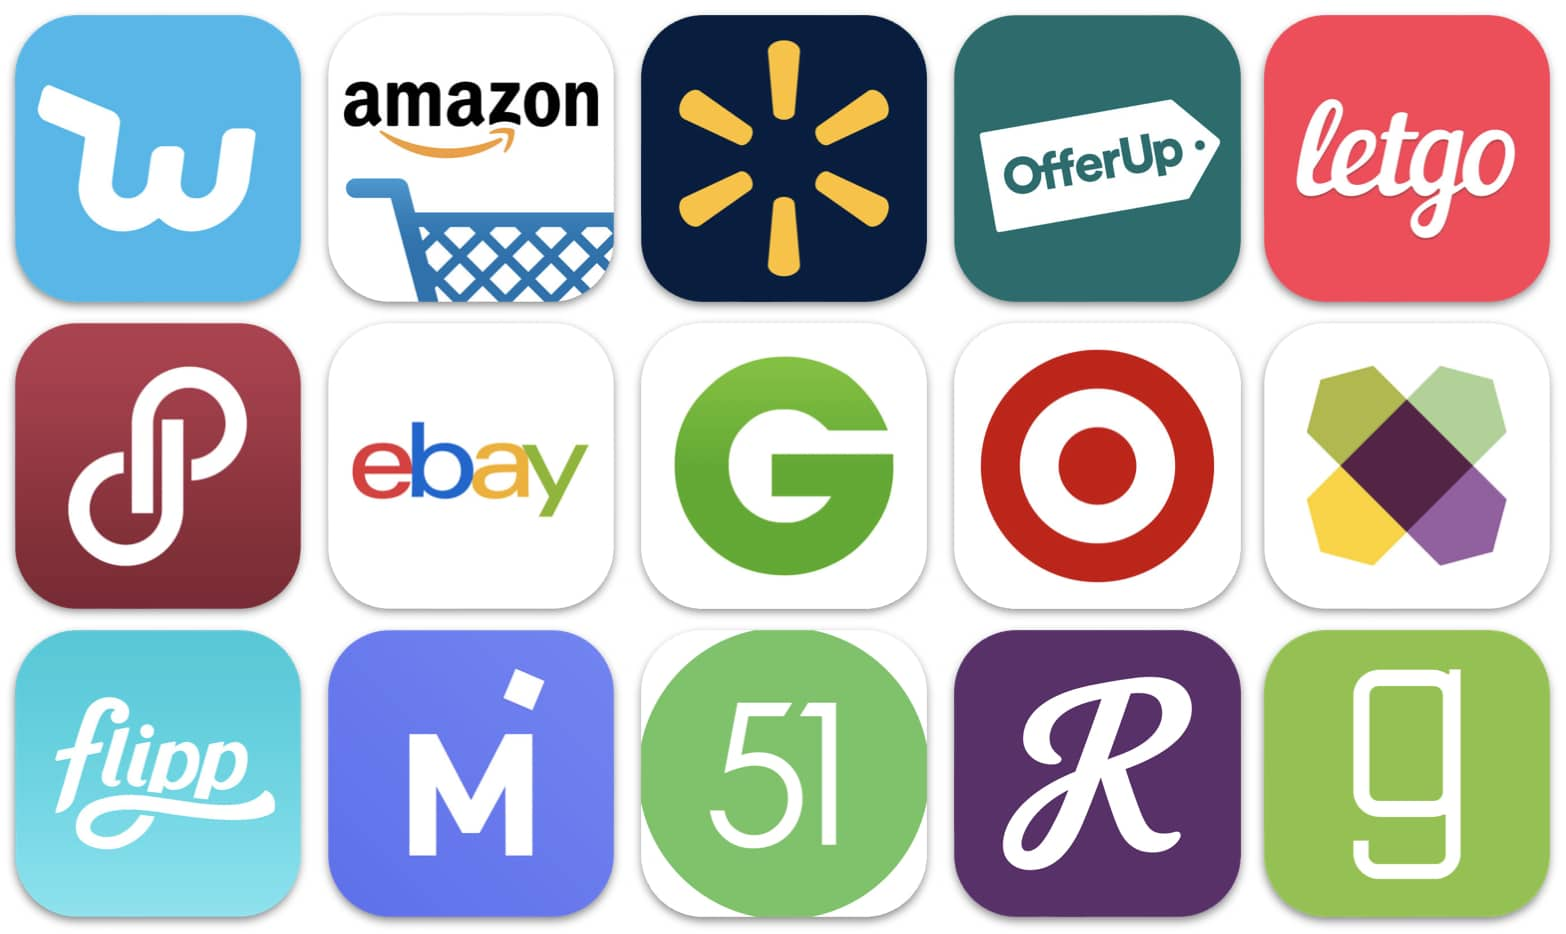 Image has app icons for different shopping sites.